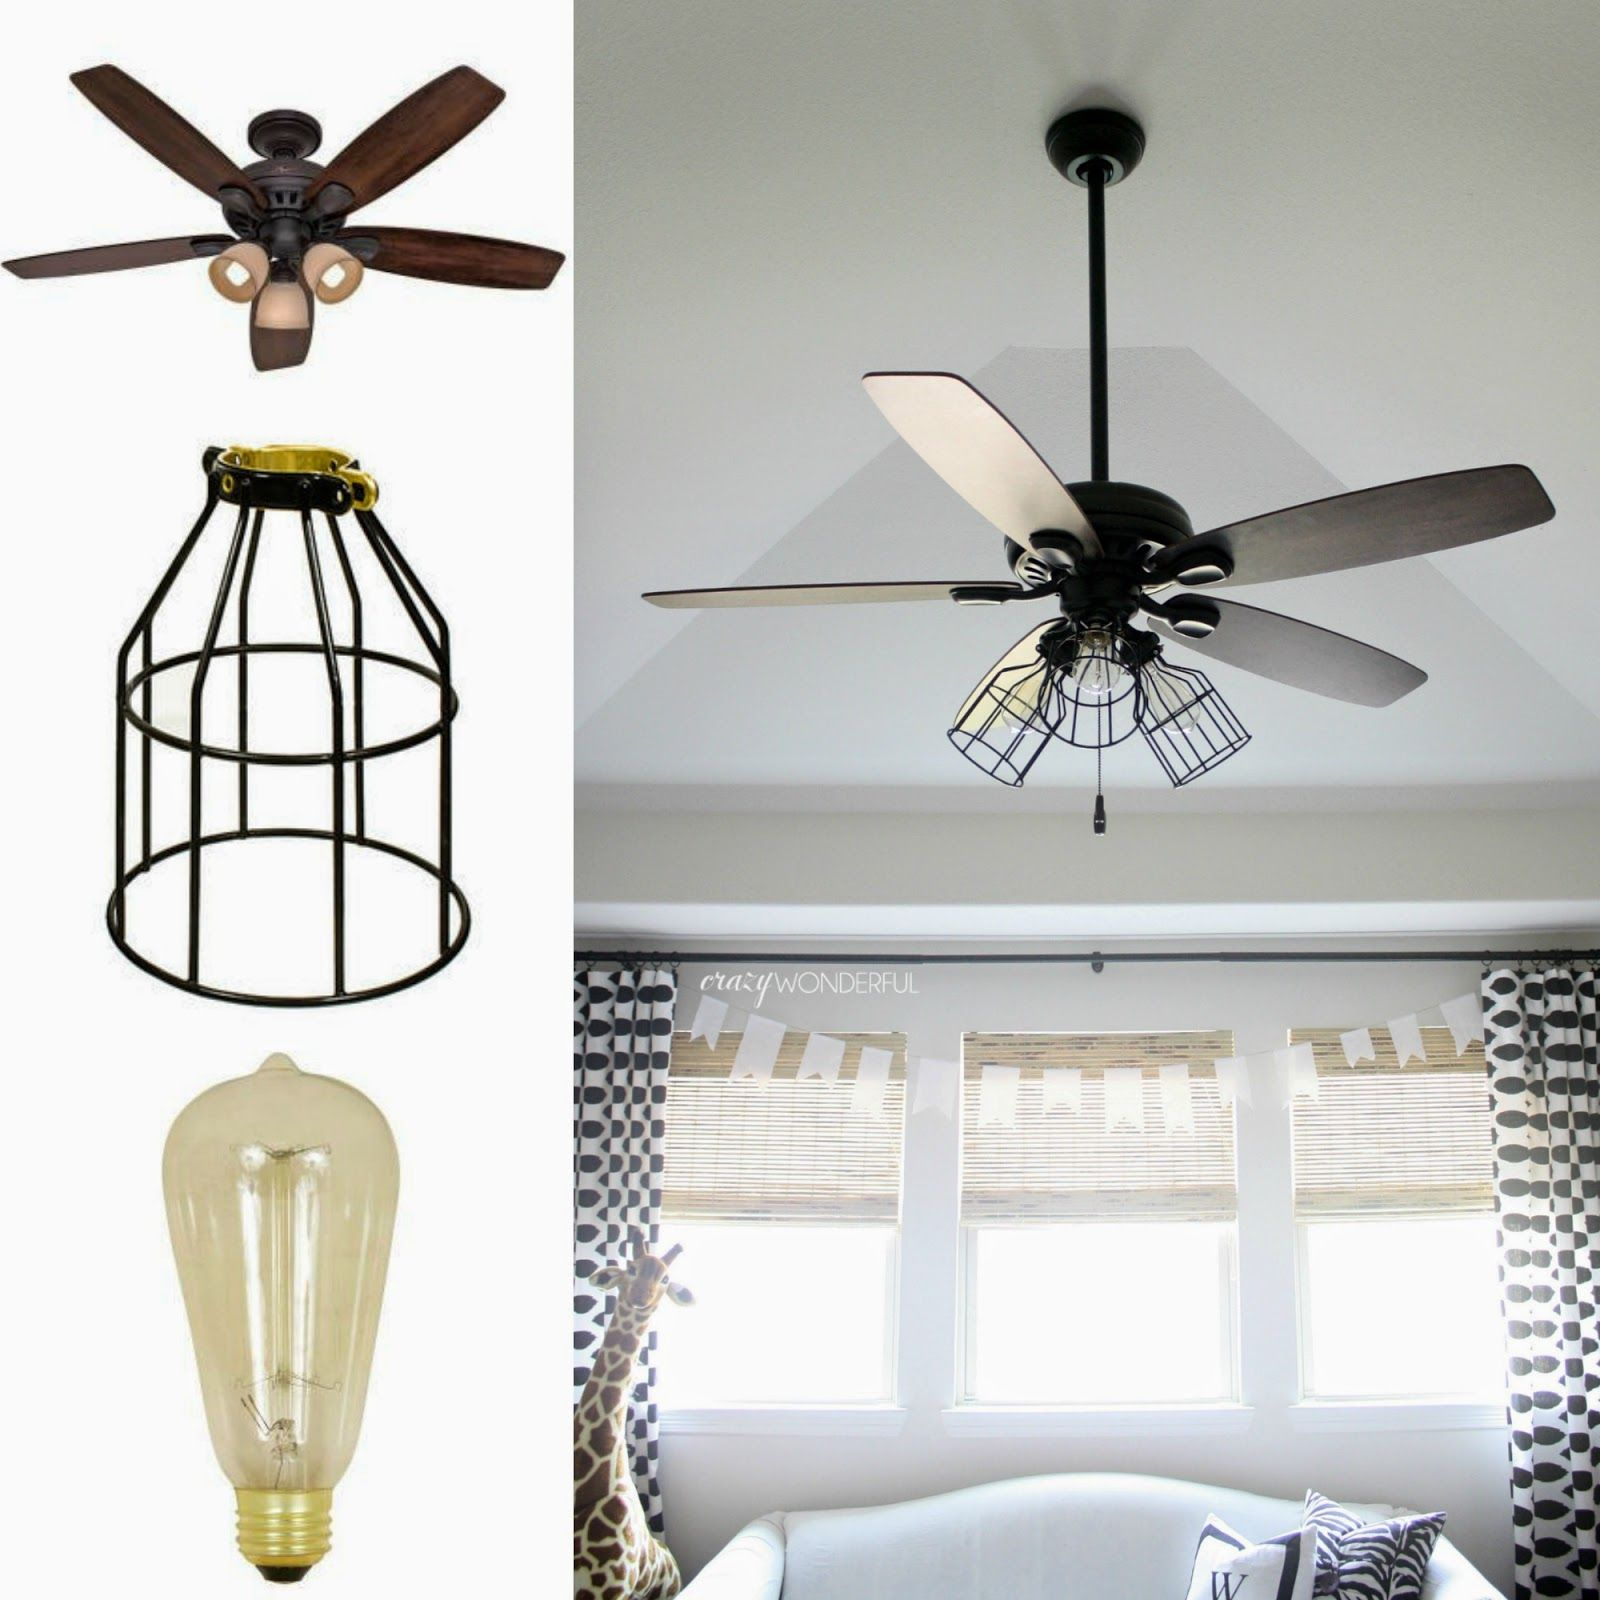 Crazy wonderful diy cage light ceiling fan crazy wonderful blog crazy wonderful diy cage light ceiling fan aloadofball Gallery